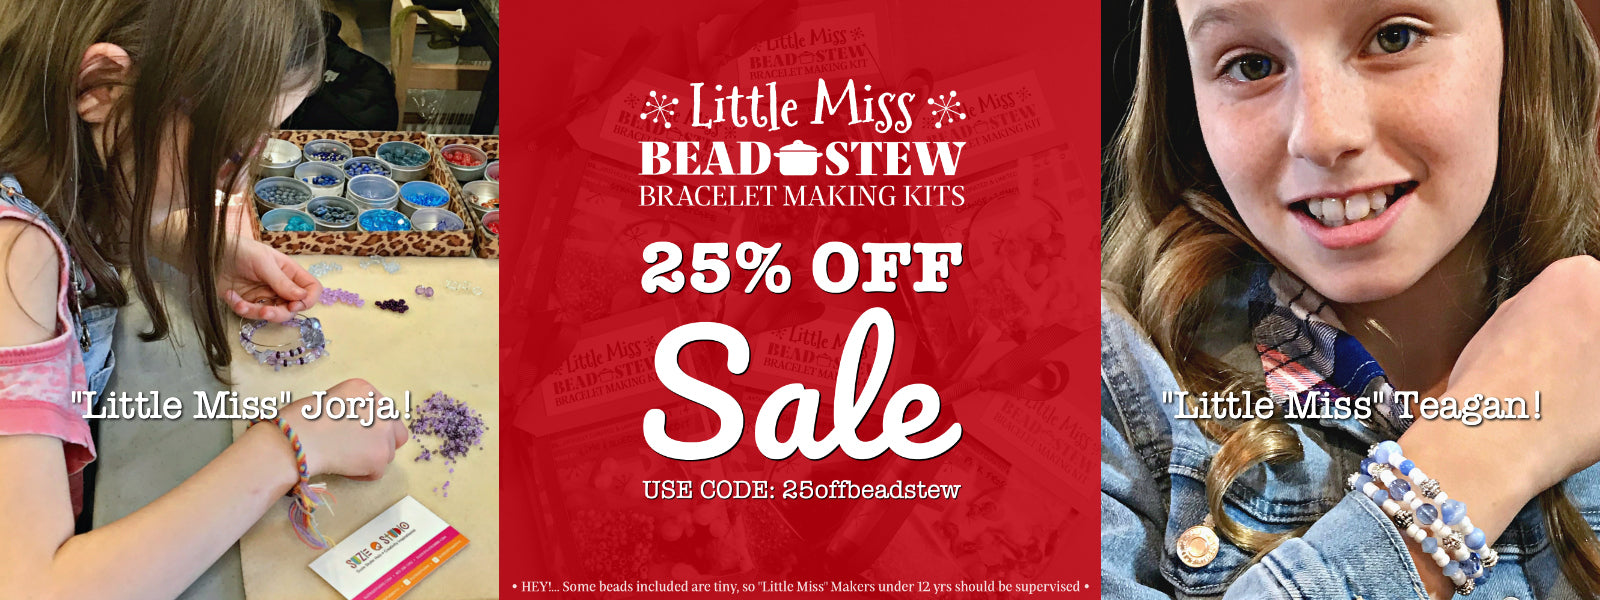 """Our BEAD STEW kid's bracelet making kits are perfect for """"Little Miss"""" jewelry makers. The bead and color combinations ensure it's easy to create the bangle-style bracelet. Use promo code for 25% OFF."""